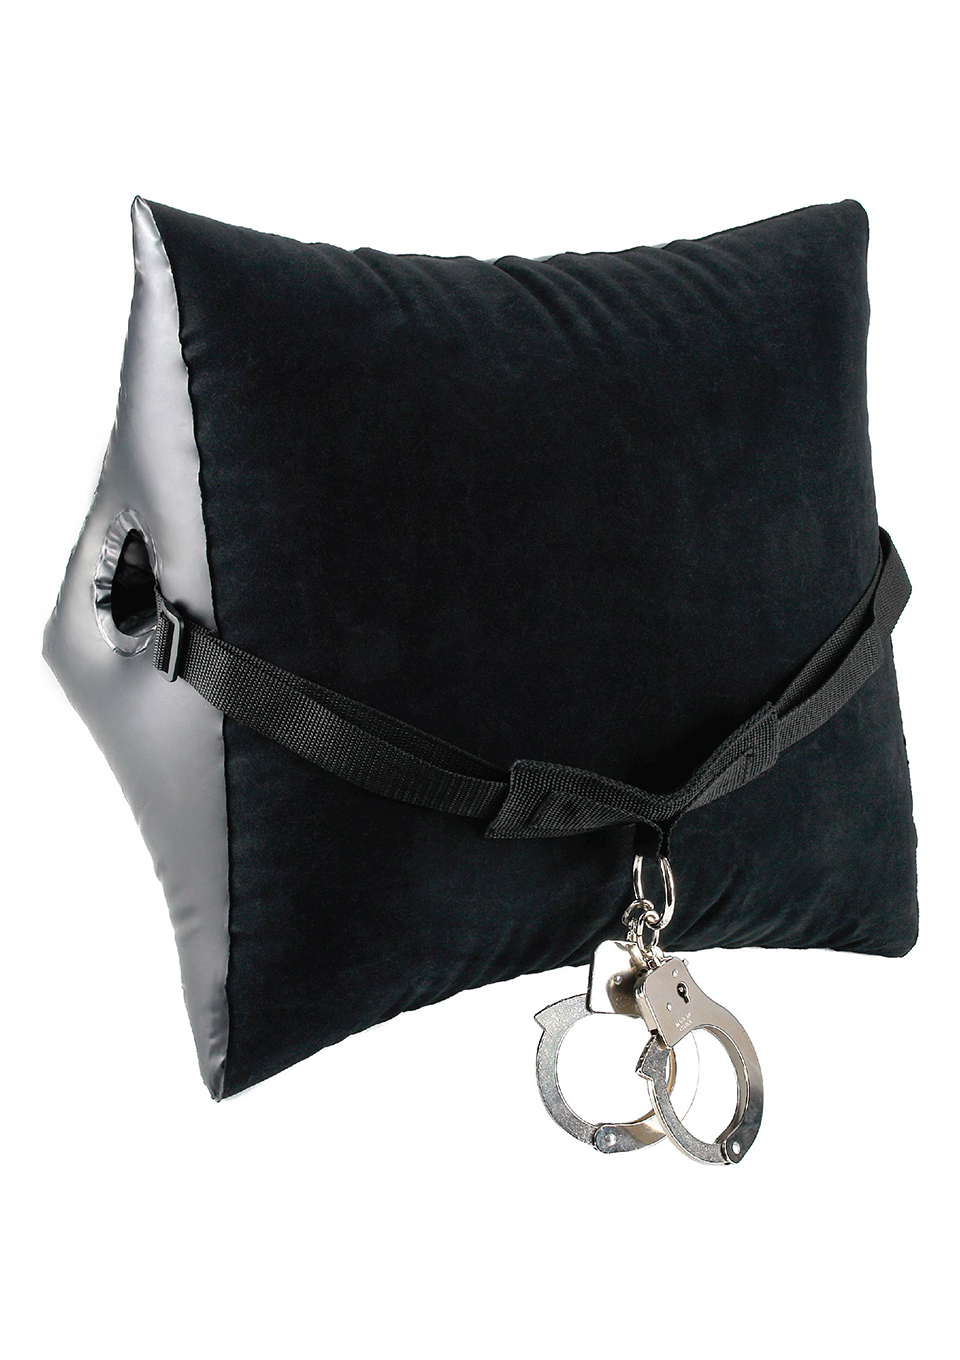 Надувная подушка с наручниками Position Master With Cuffs Black